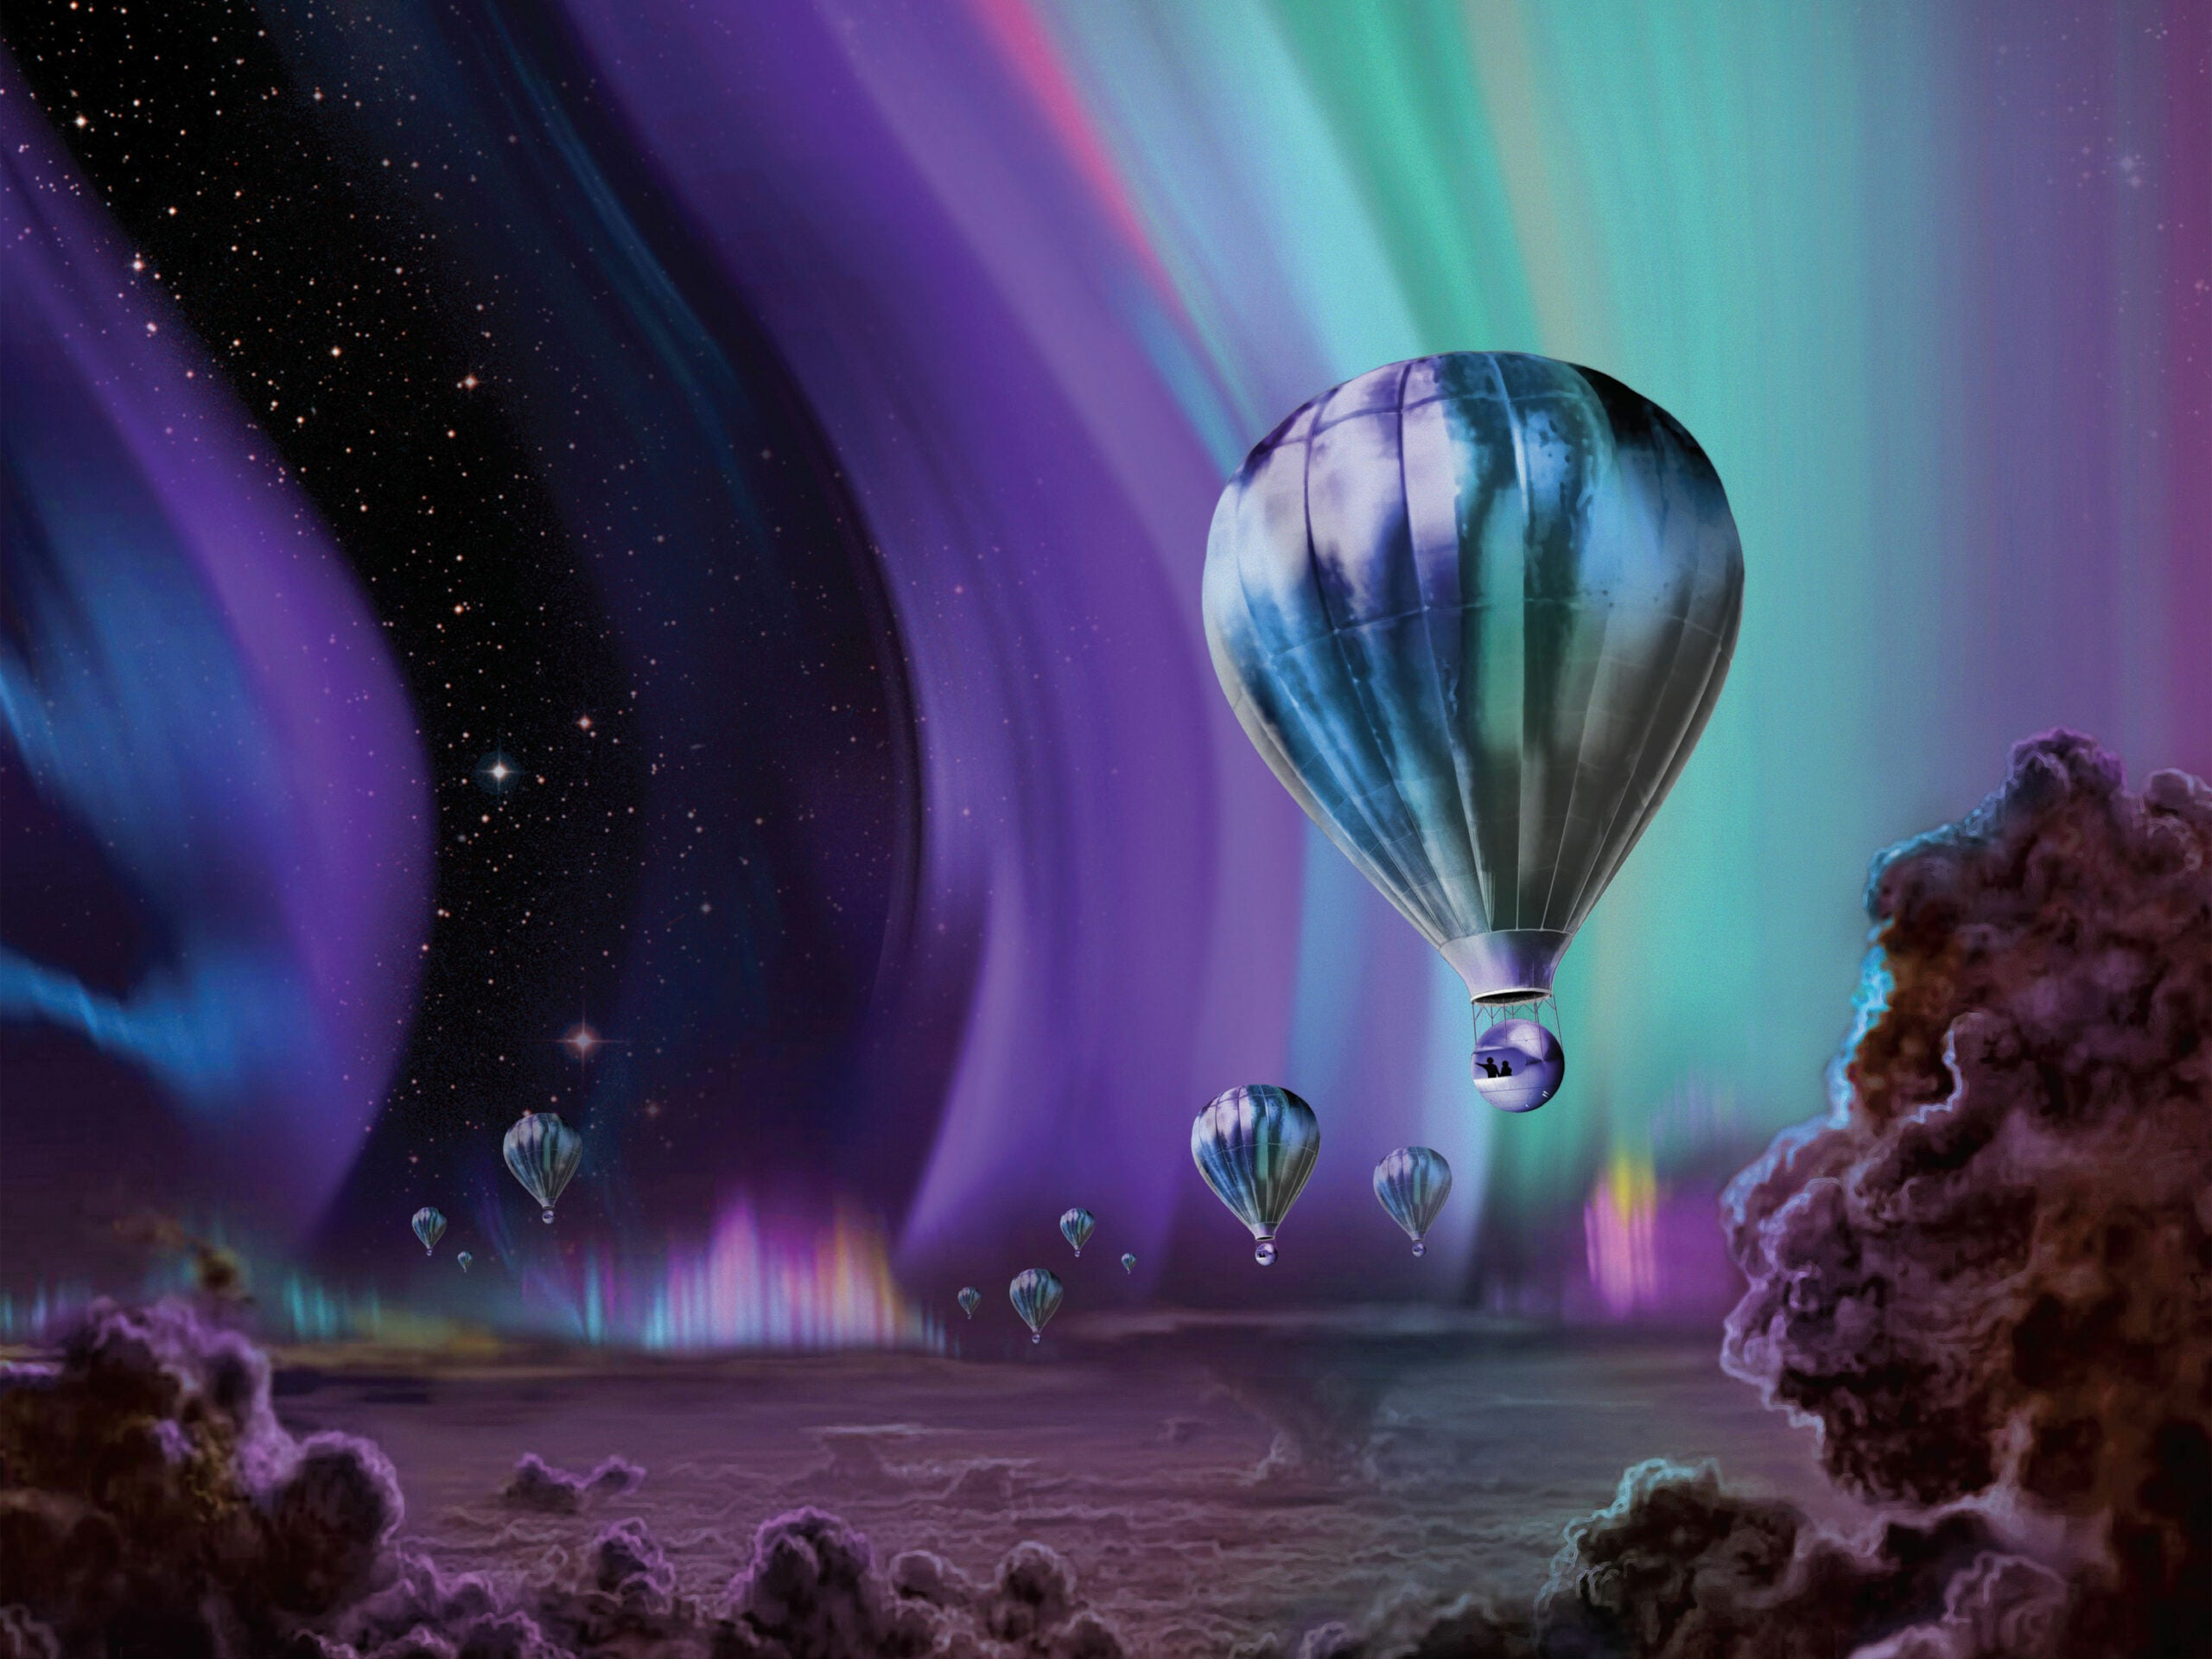 NASA Just Released Even More Awesome Interplanetary Travel Posters